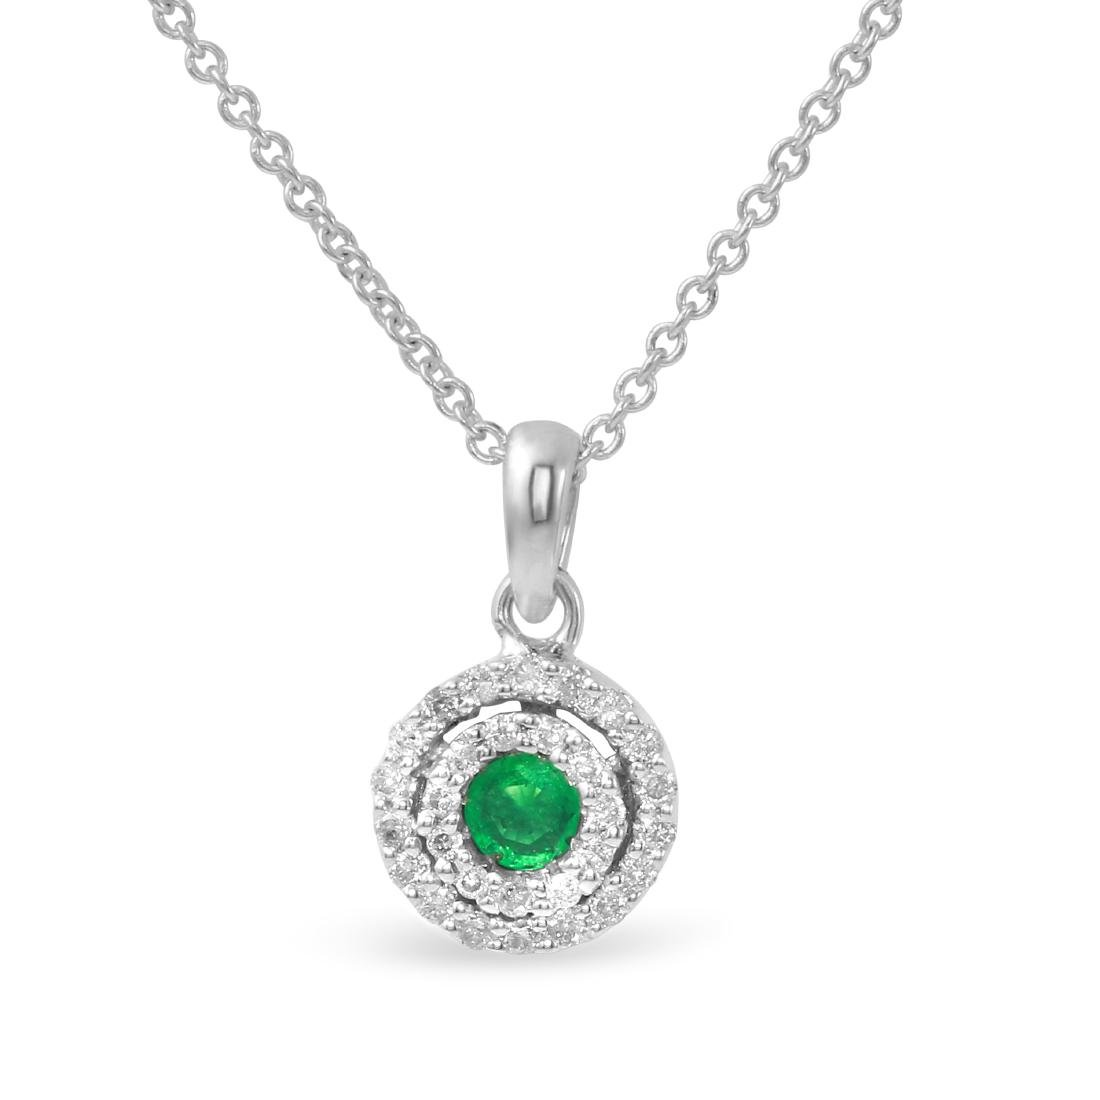 14KT White Gold Emerald and Diamond Pendant with Chain